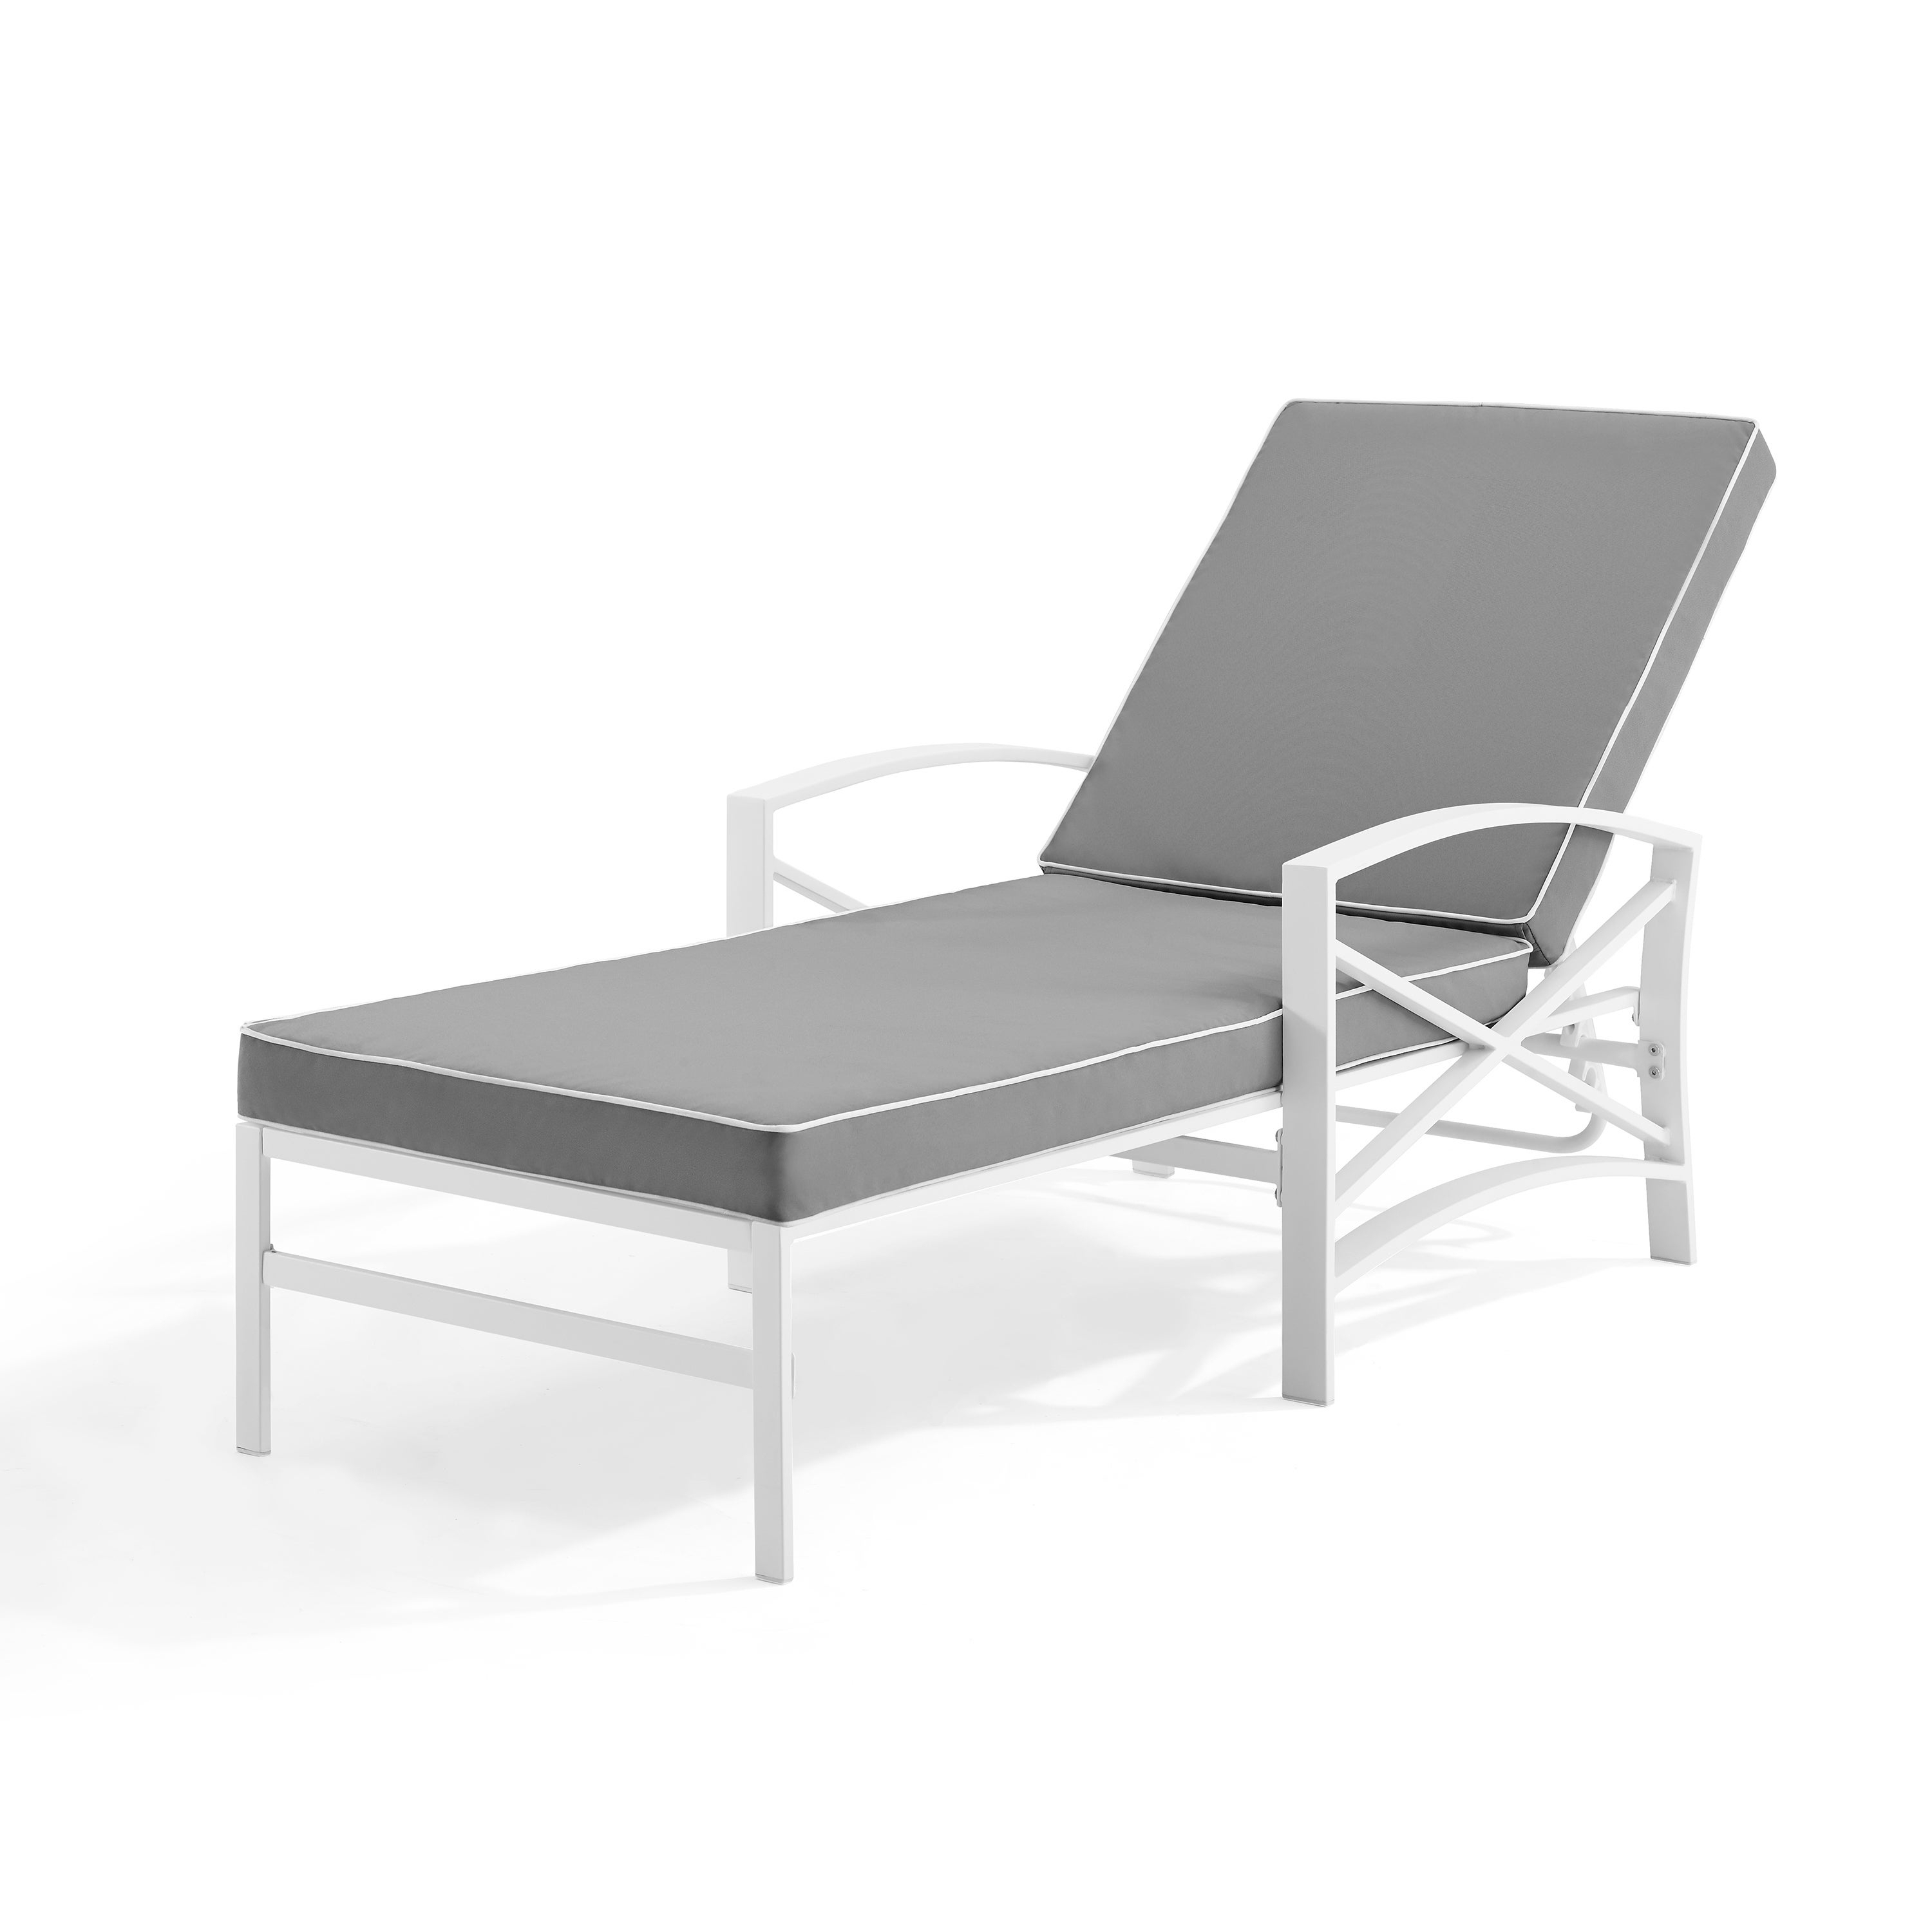 Havenside Home Davis Chaise Lounge Chair In White With Grey Cushions For Widely Used Lounge Chairs In White With Grey Cushions (View 4 of 25)